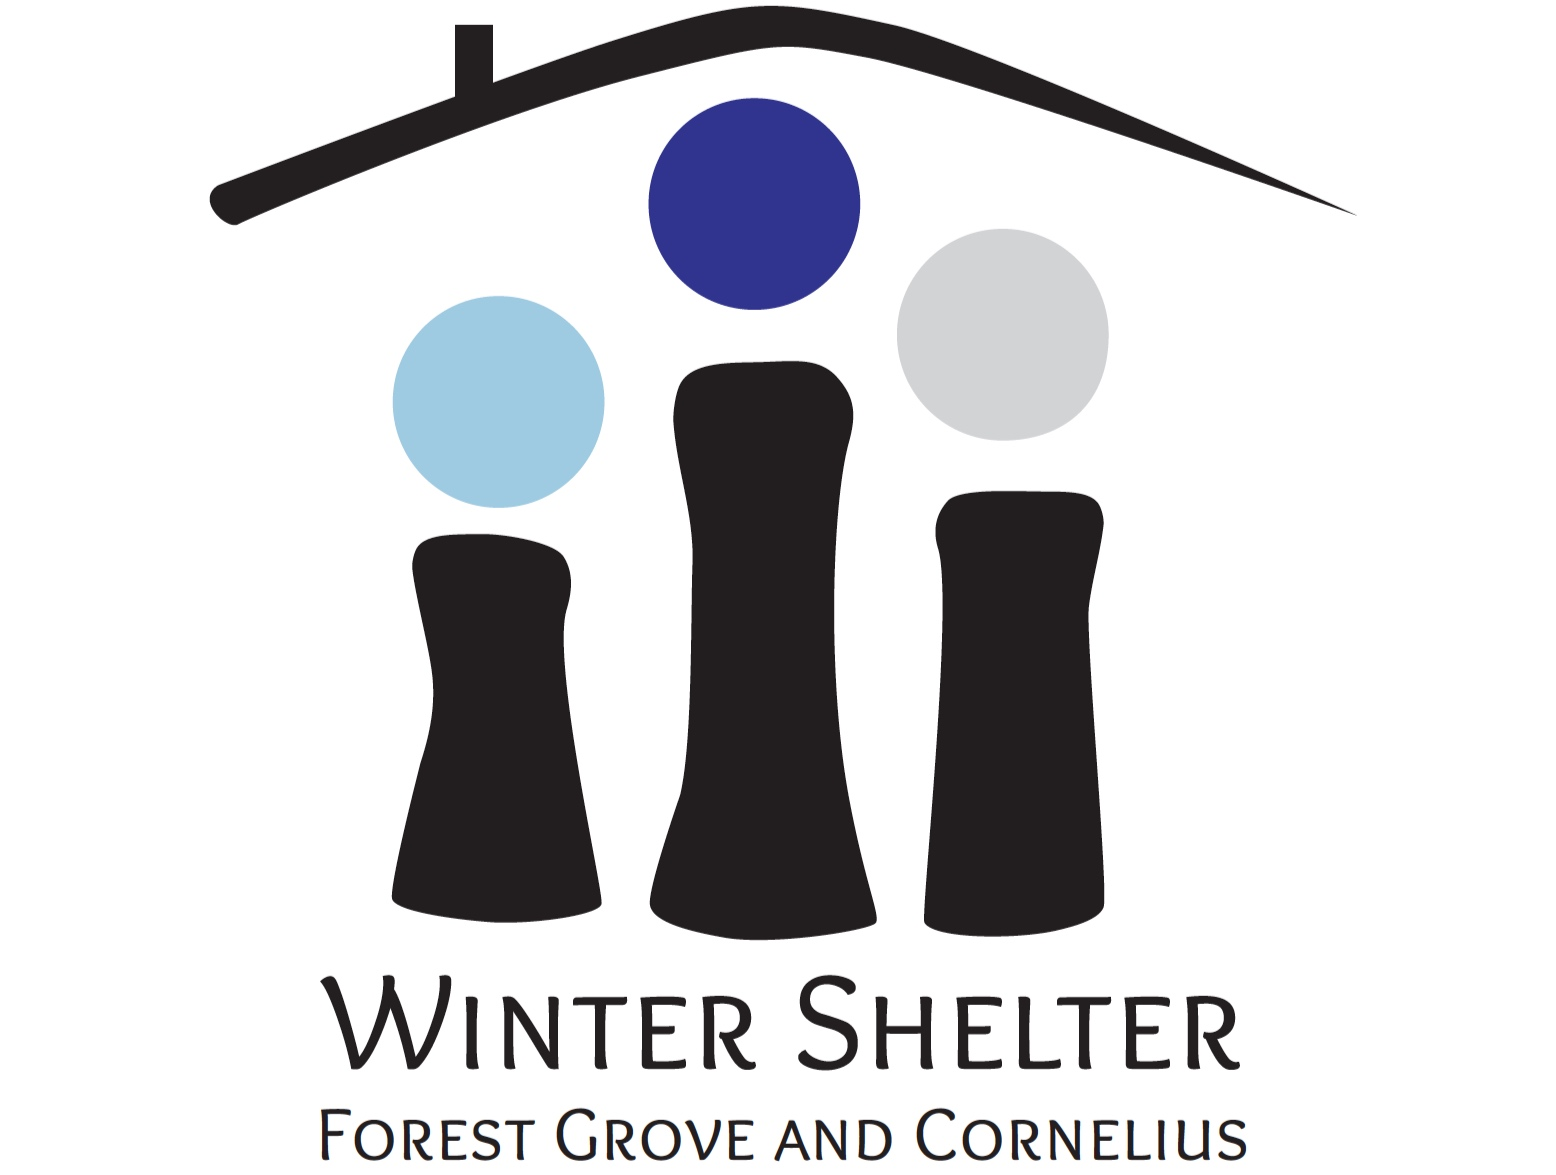 Winter+Shelter+png.jpg